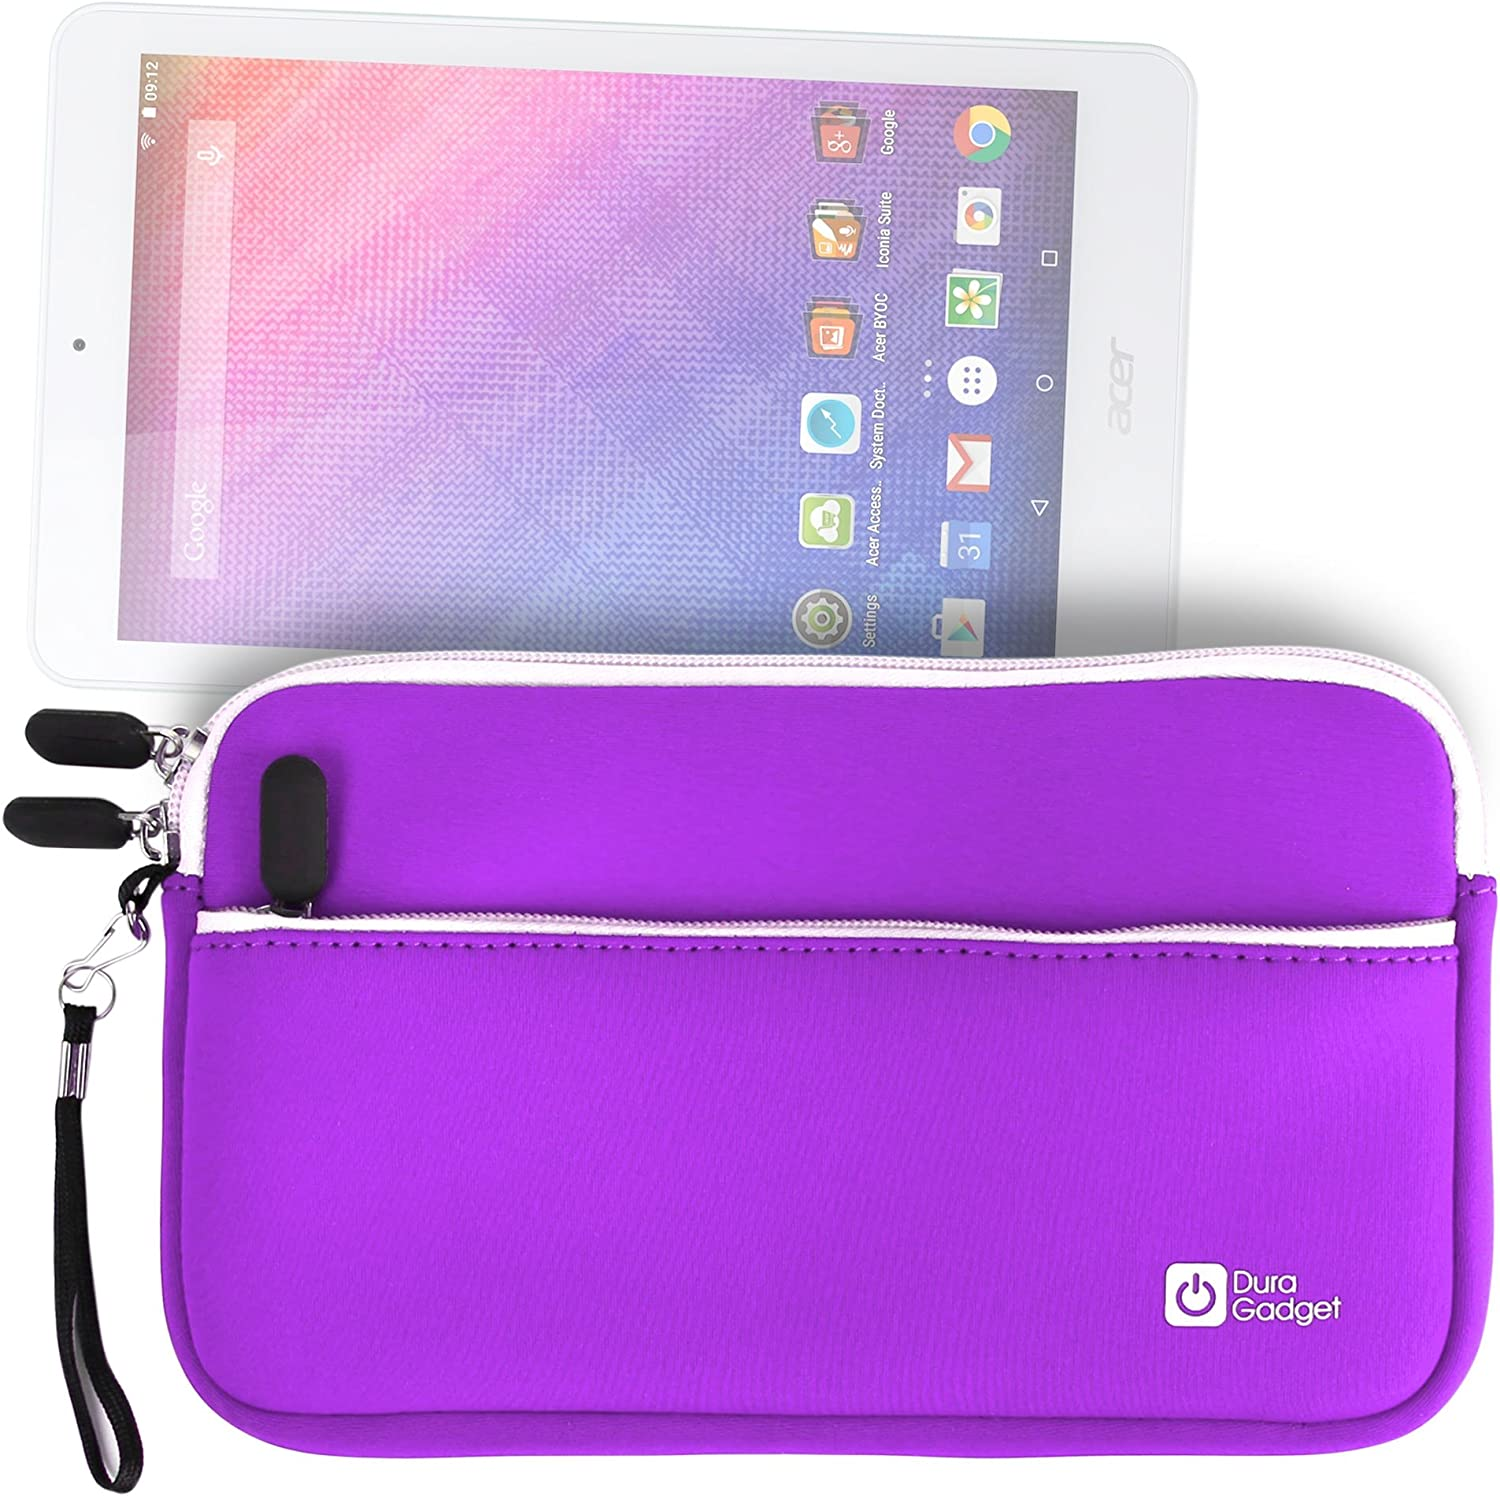 Purple Water Resistant Neoprene Travel Case with Front Zip Compartment - Compatible with The Acer Iconia One B1-850 Tablet